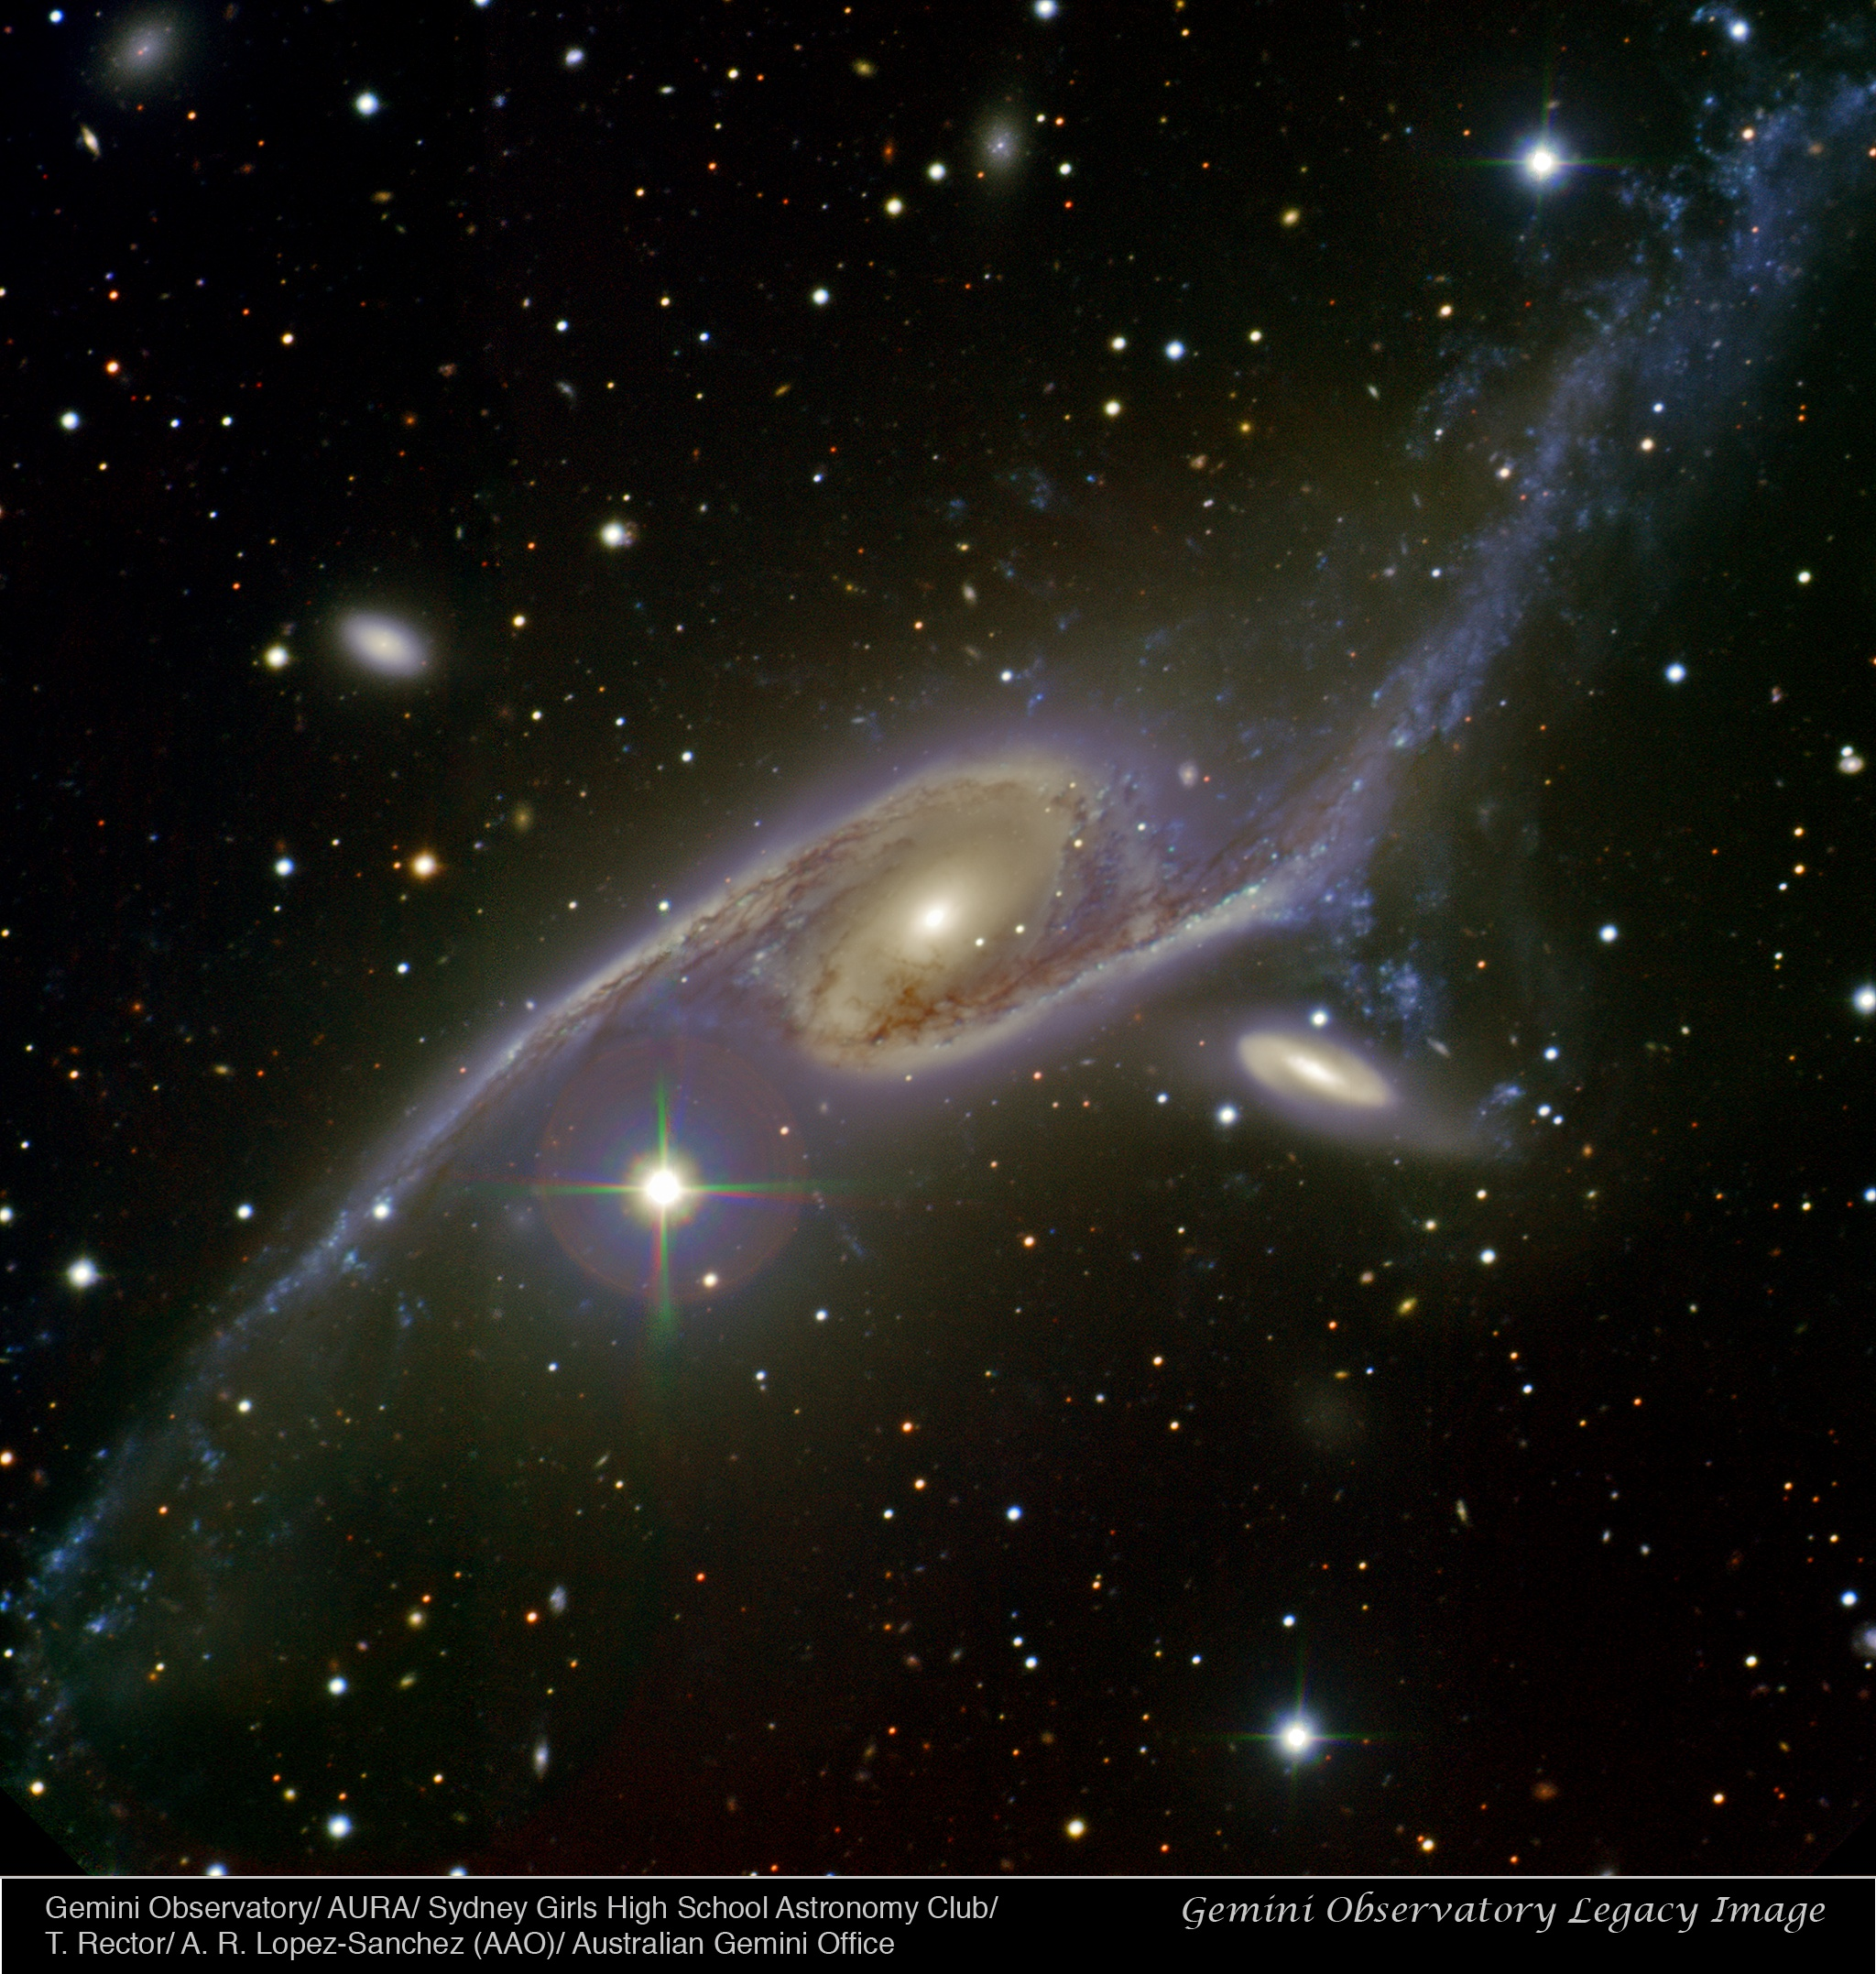 APOD: 2011 April 3 - Giant Galaxy NGC 6872